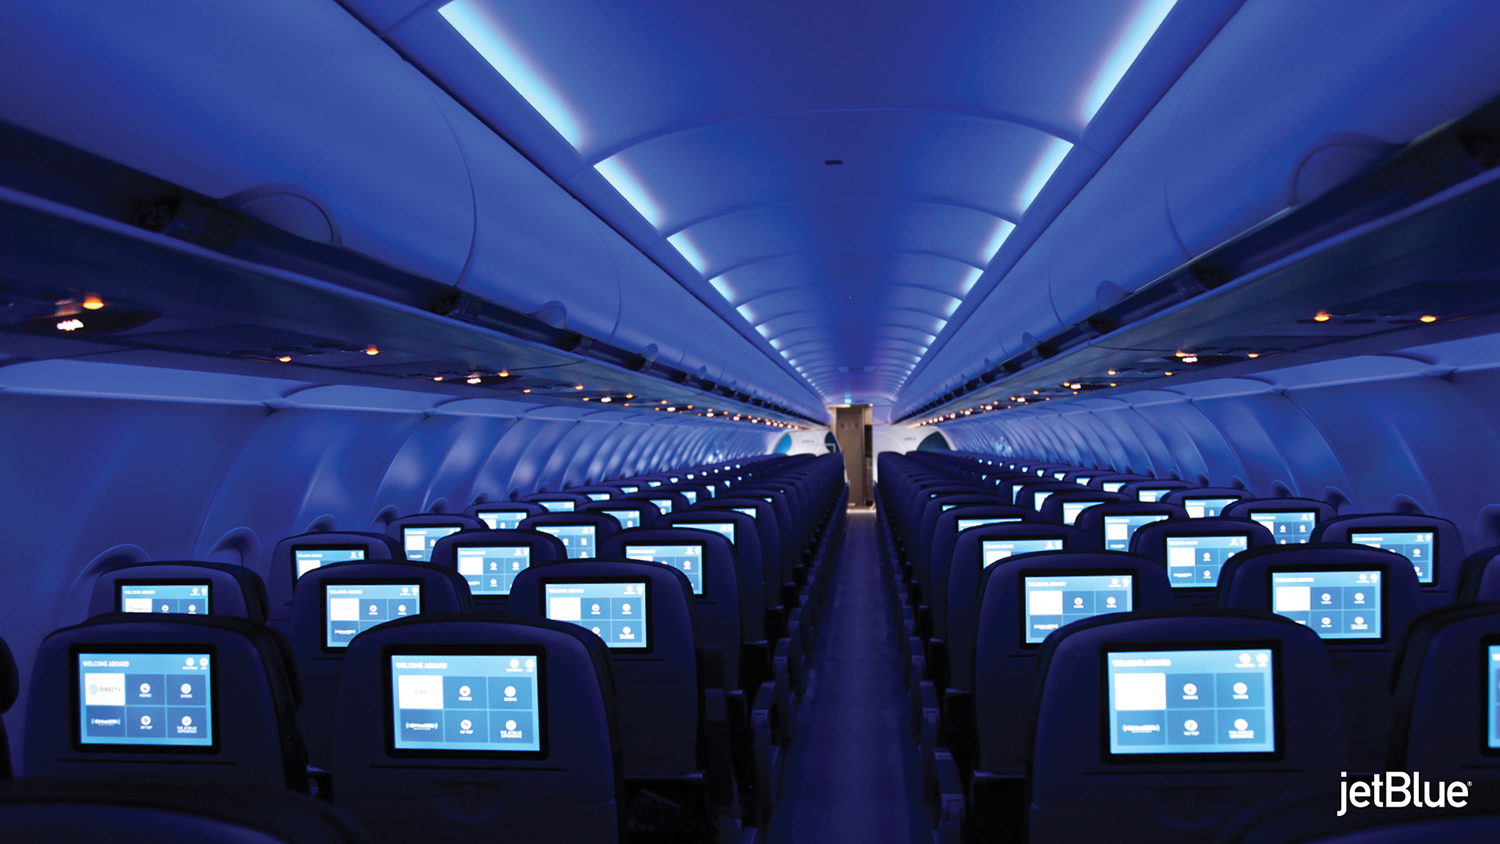 """Jet Blue expands at DCOTA JetBlue announced the Design Center of the Americas will be the new home and """"inspiration center"""" for its JetBlue Travel Products subsidiary, which offers vacation bundles. The center's 70 employees will seek technology to make travel easier."""